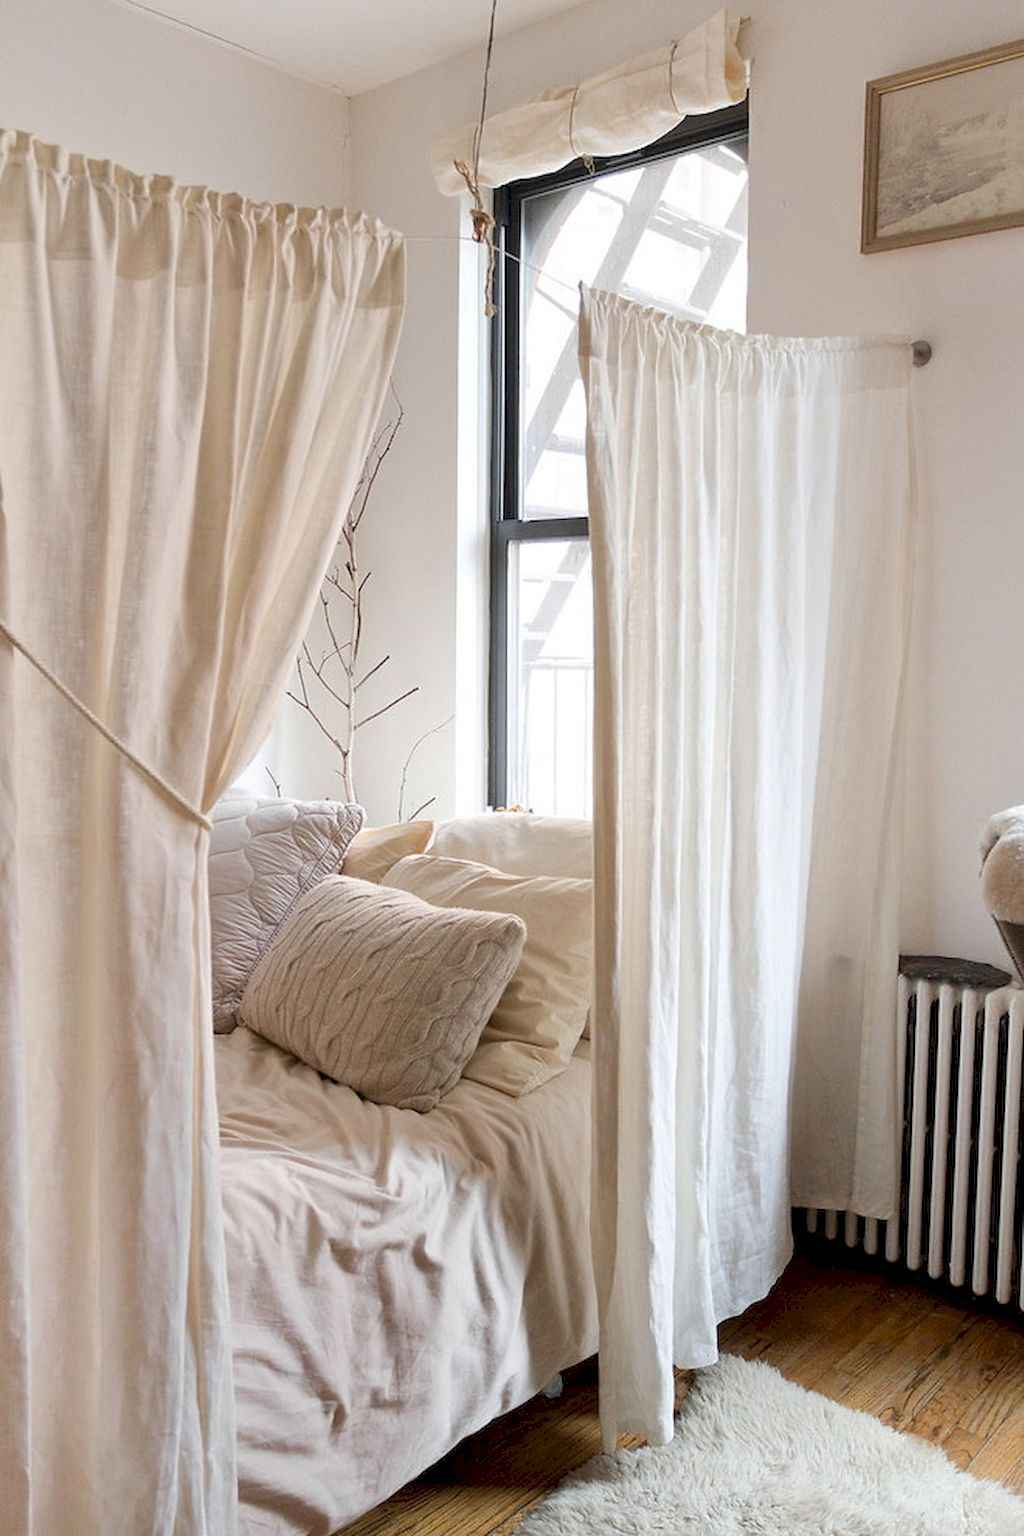 Amazing small first apartment decorating ideas (40)